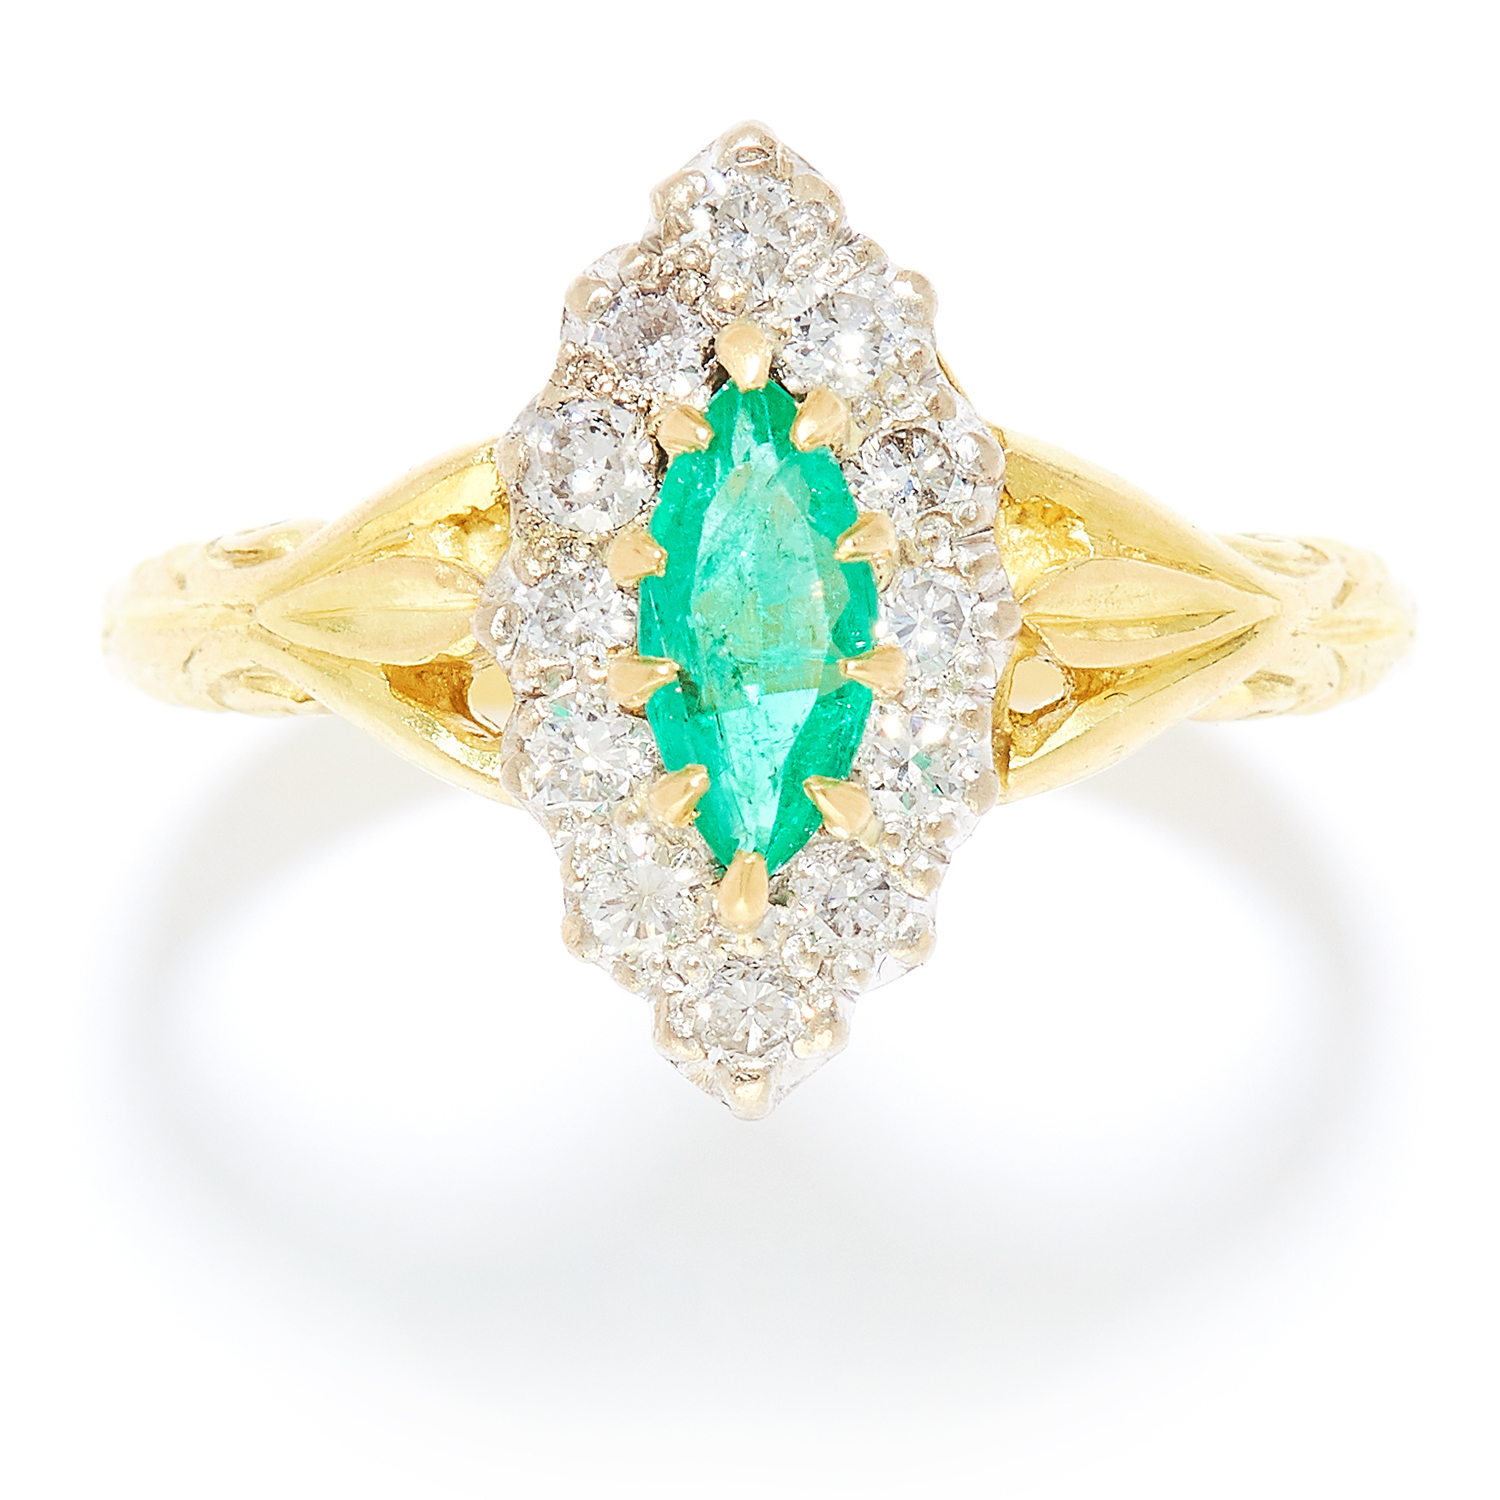 EMERALD AND DIAMOND DRESS RING in 18ct yellow and white gold, the marquise cut emerald encircled